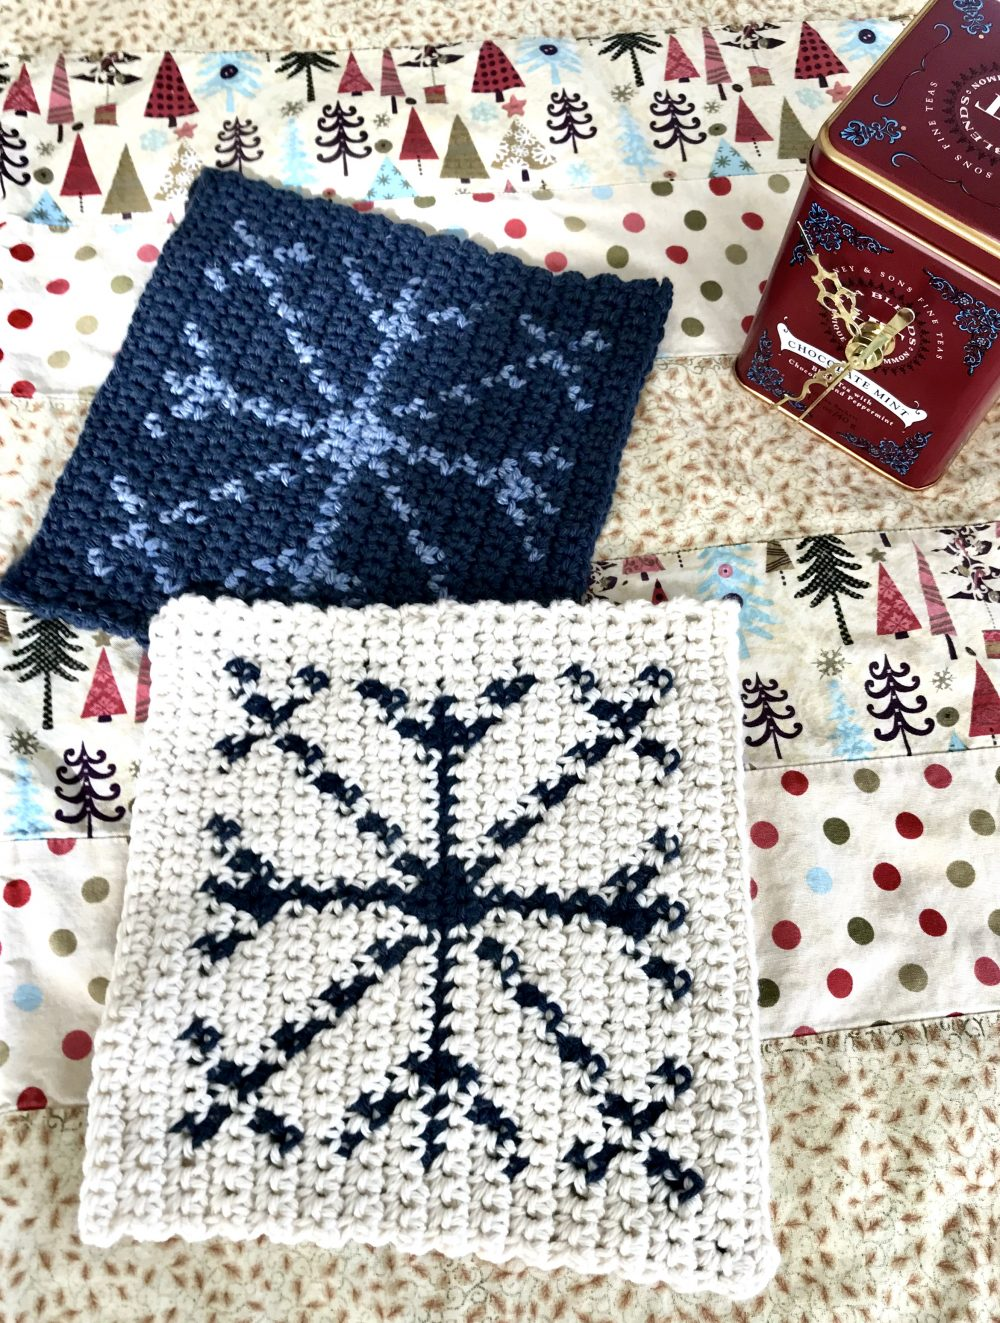 Snowflake Hot Pad crochet pattern – holiday decorations